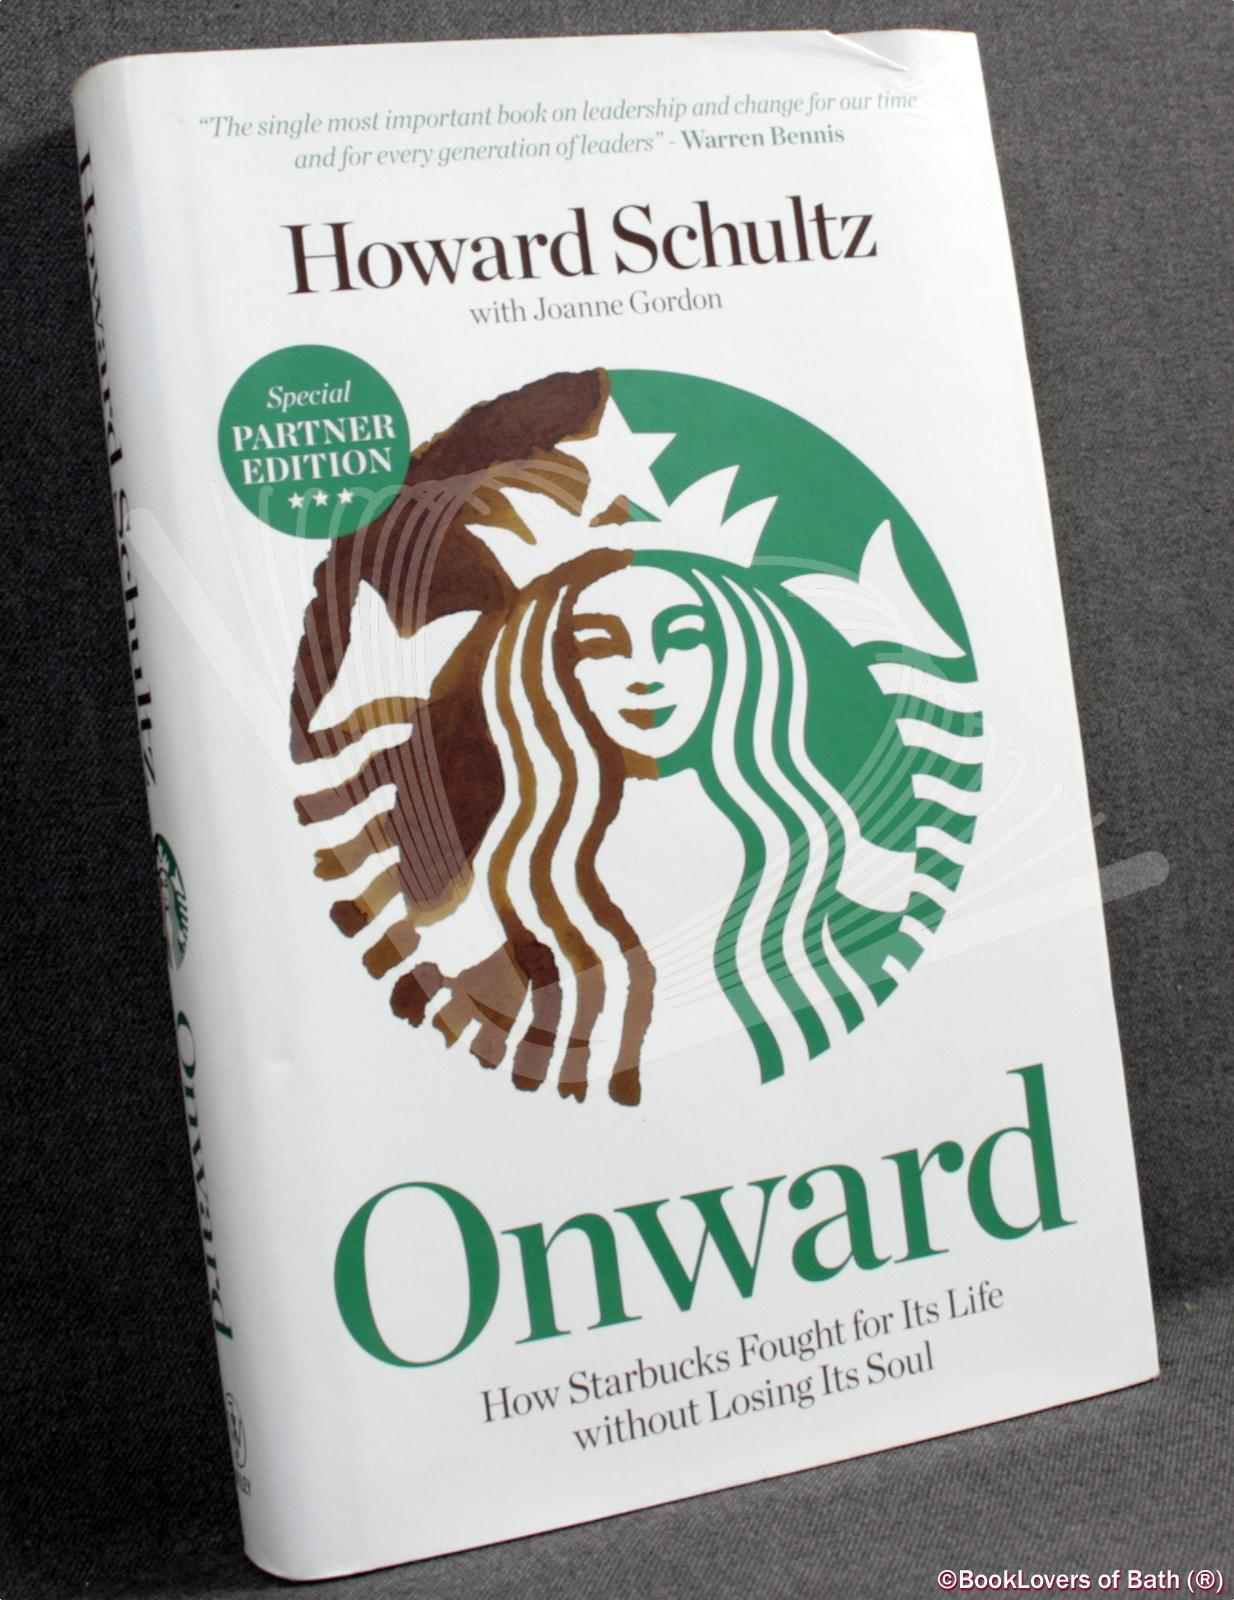 Onward: How Starbucks Fought for Its Life Without Losing Its Soul - Howard Schultz with Joanne Gordon